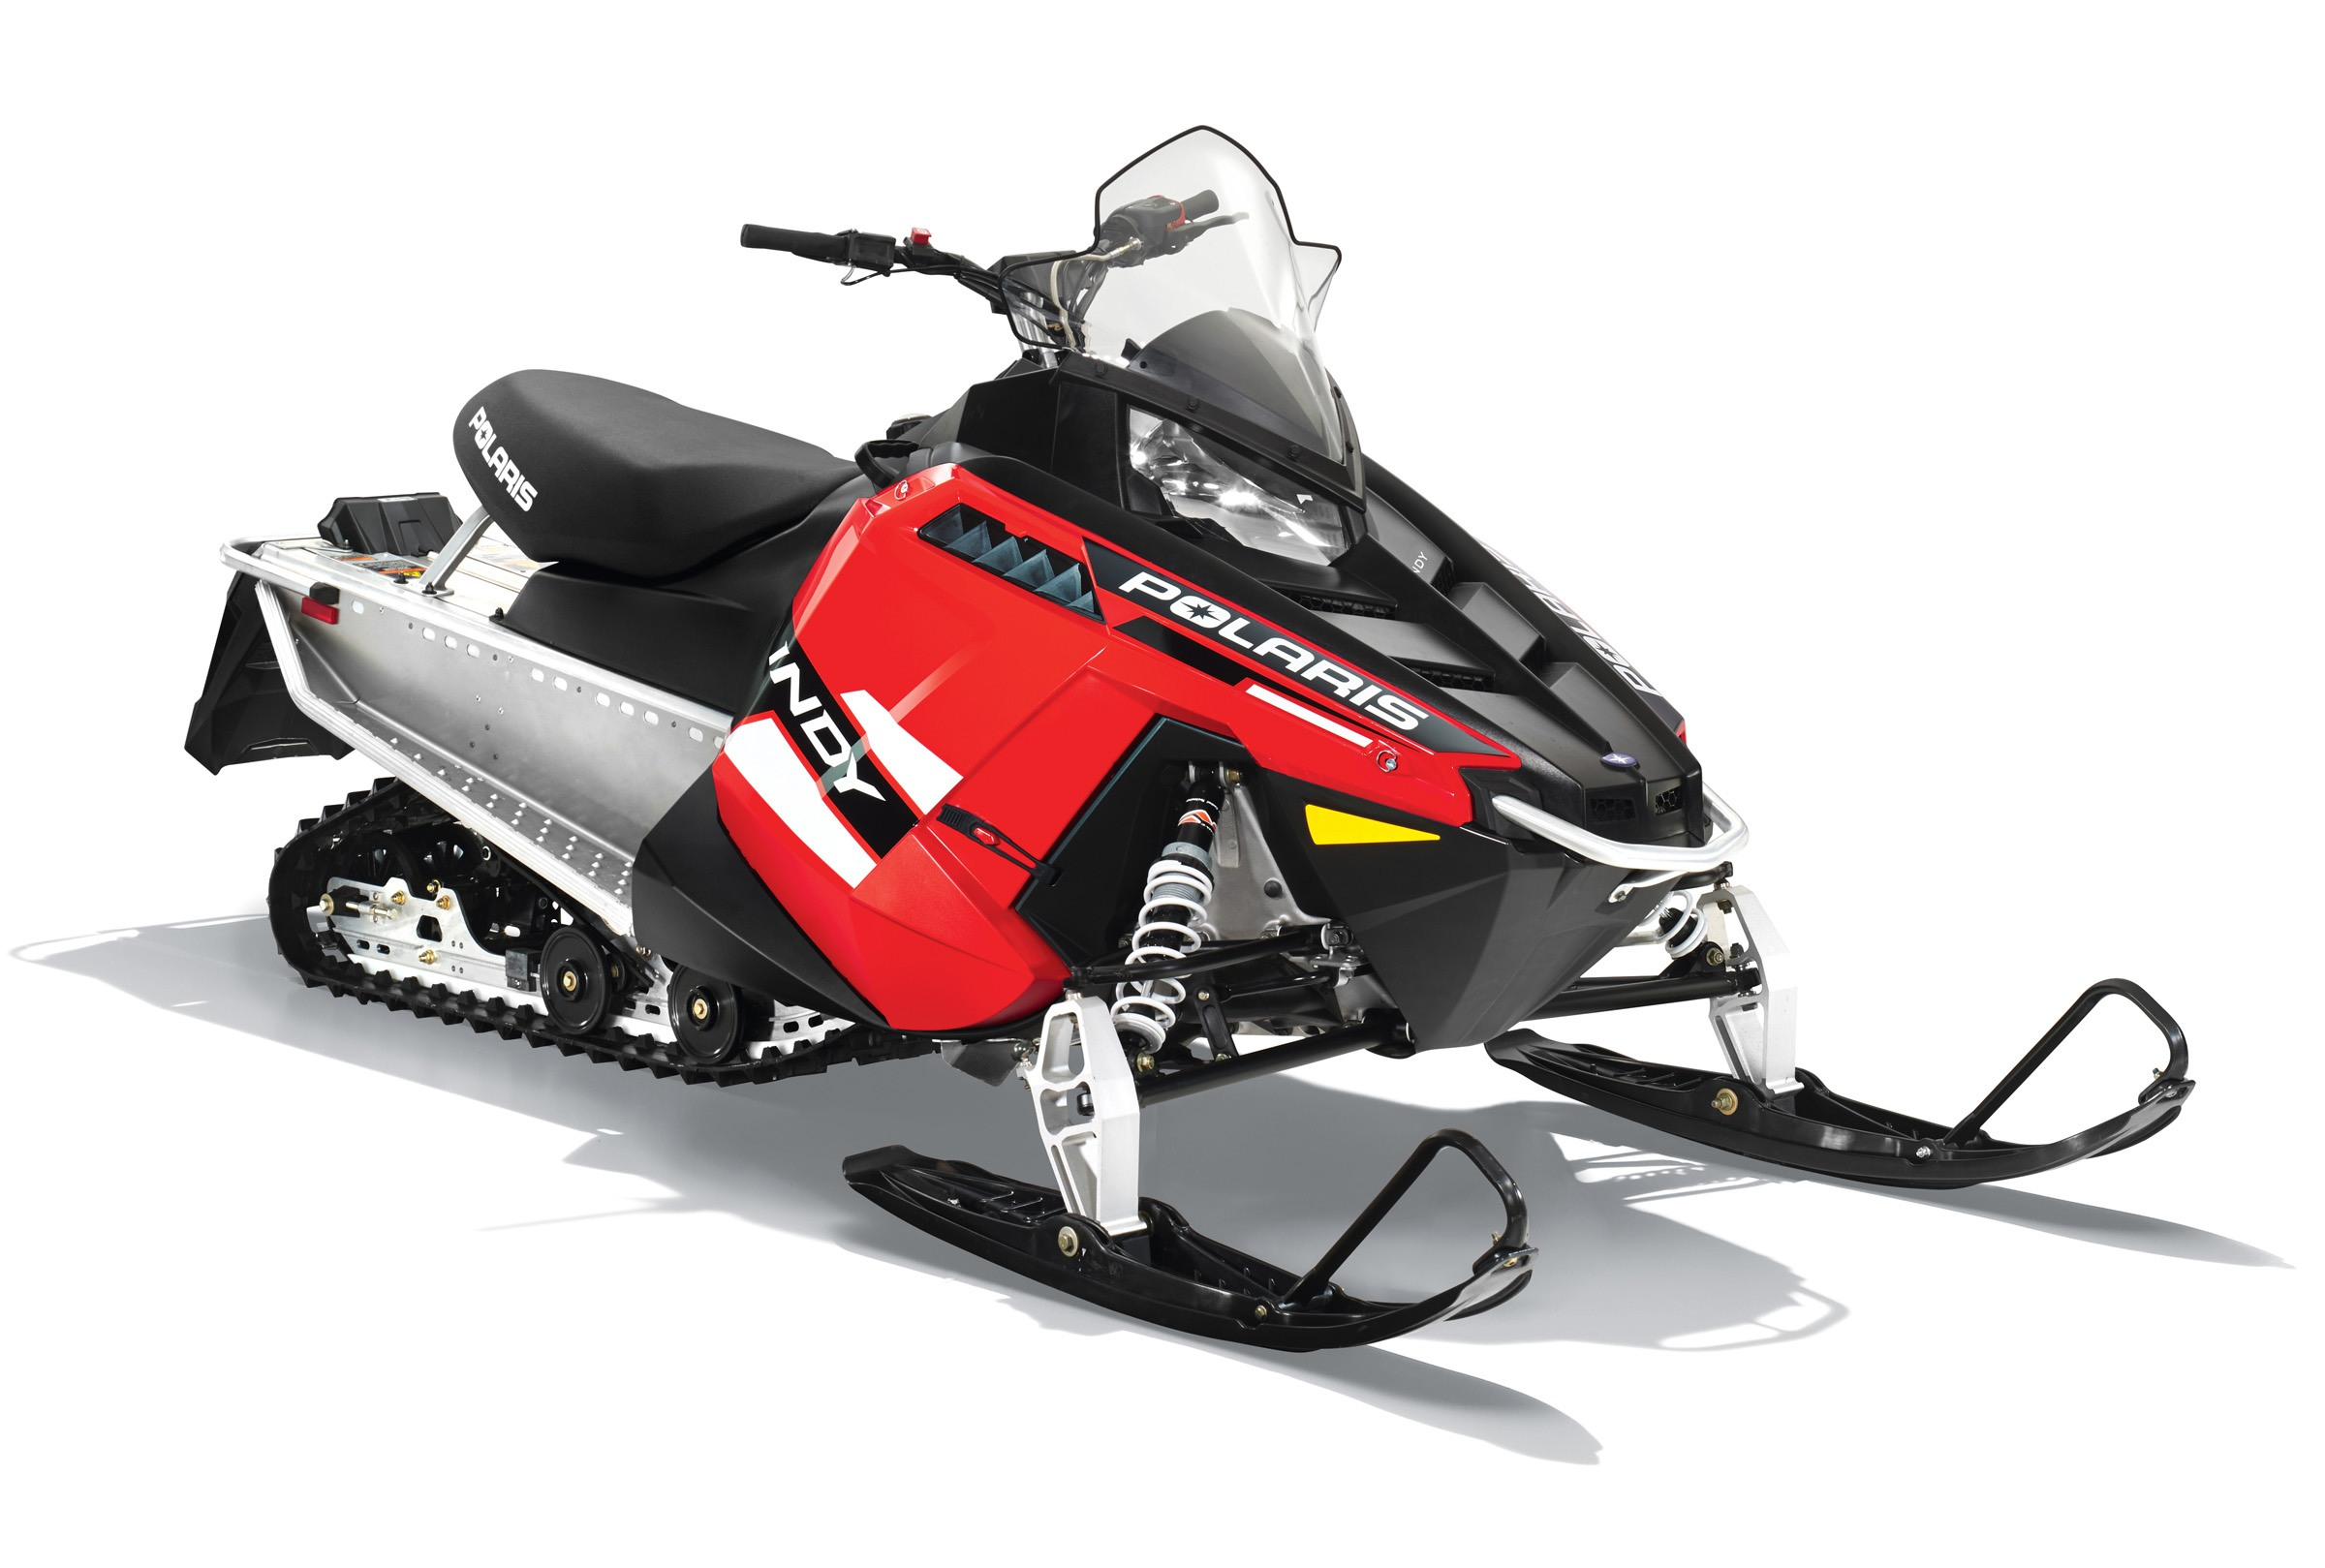 2016 Polaris 600 INDY ES in Lake Mills, Iowa